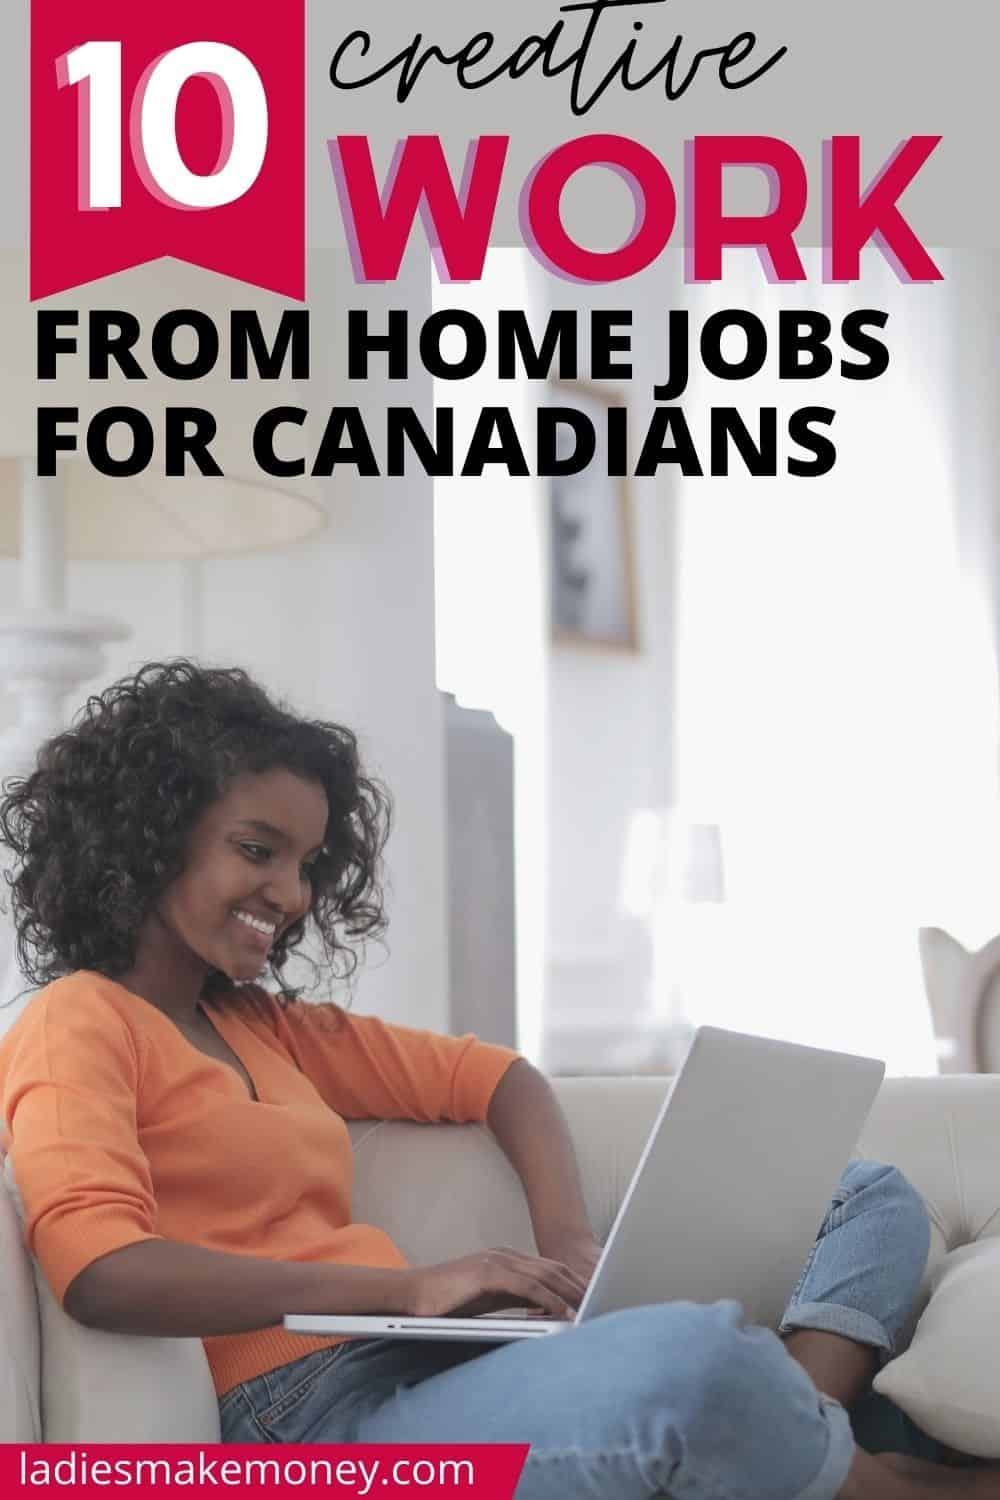 Creative Work From Home Jobs In Canada! Home jobs are not just limited to the United States - there are many legitimate work from home jobs in Canada as well. Here is a list of profitable work from home jobs for Canadians to try out this year. Here is how to work from home in Canada, legit work from home jobs in Canada, work from home jobs in Canada guide